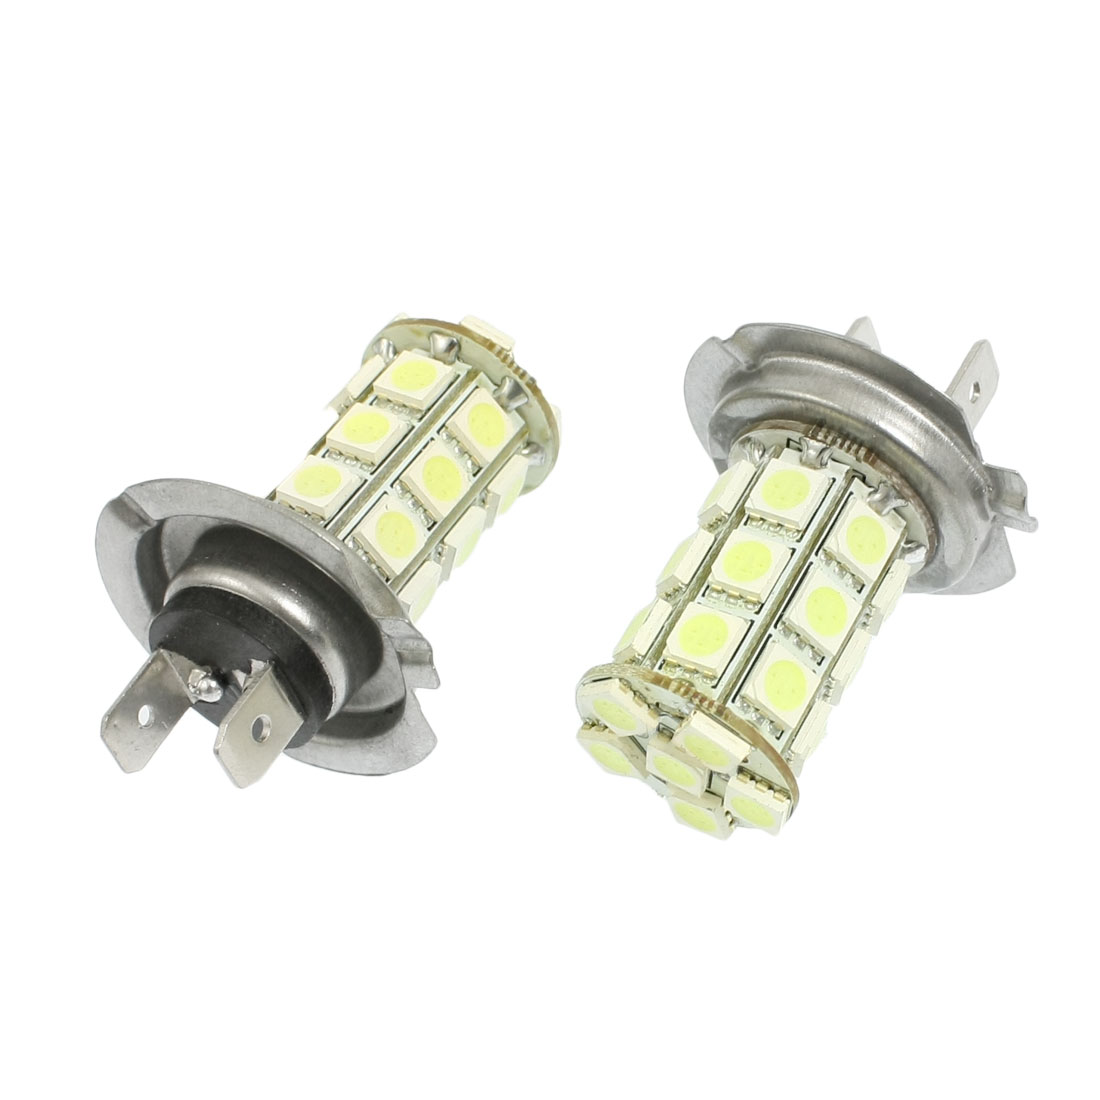 2 Pcs Car H7 White 5050 SMD 27 LED Bulb Fog Driving Light Lamp DC 12V